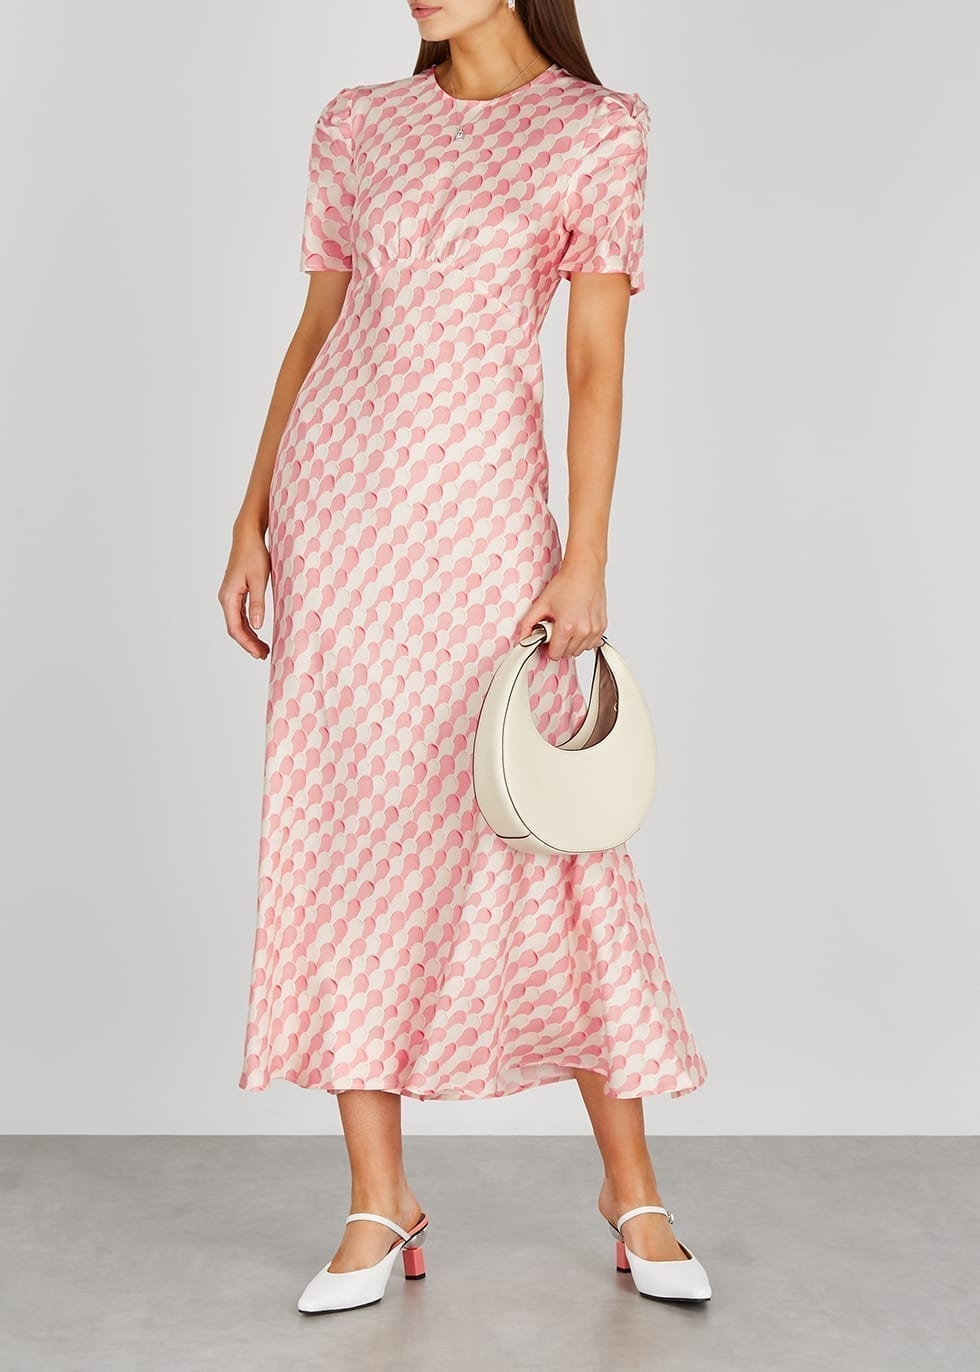 MAGGIE MARILYN It's Up To You Printed Silk Midi Dress